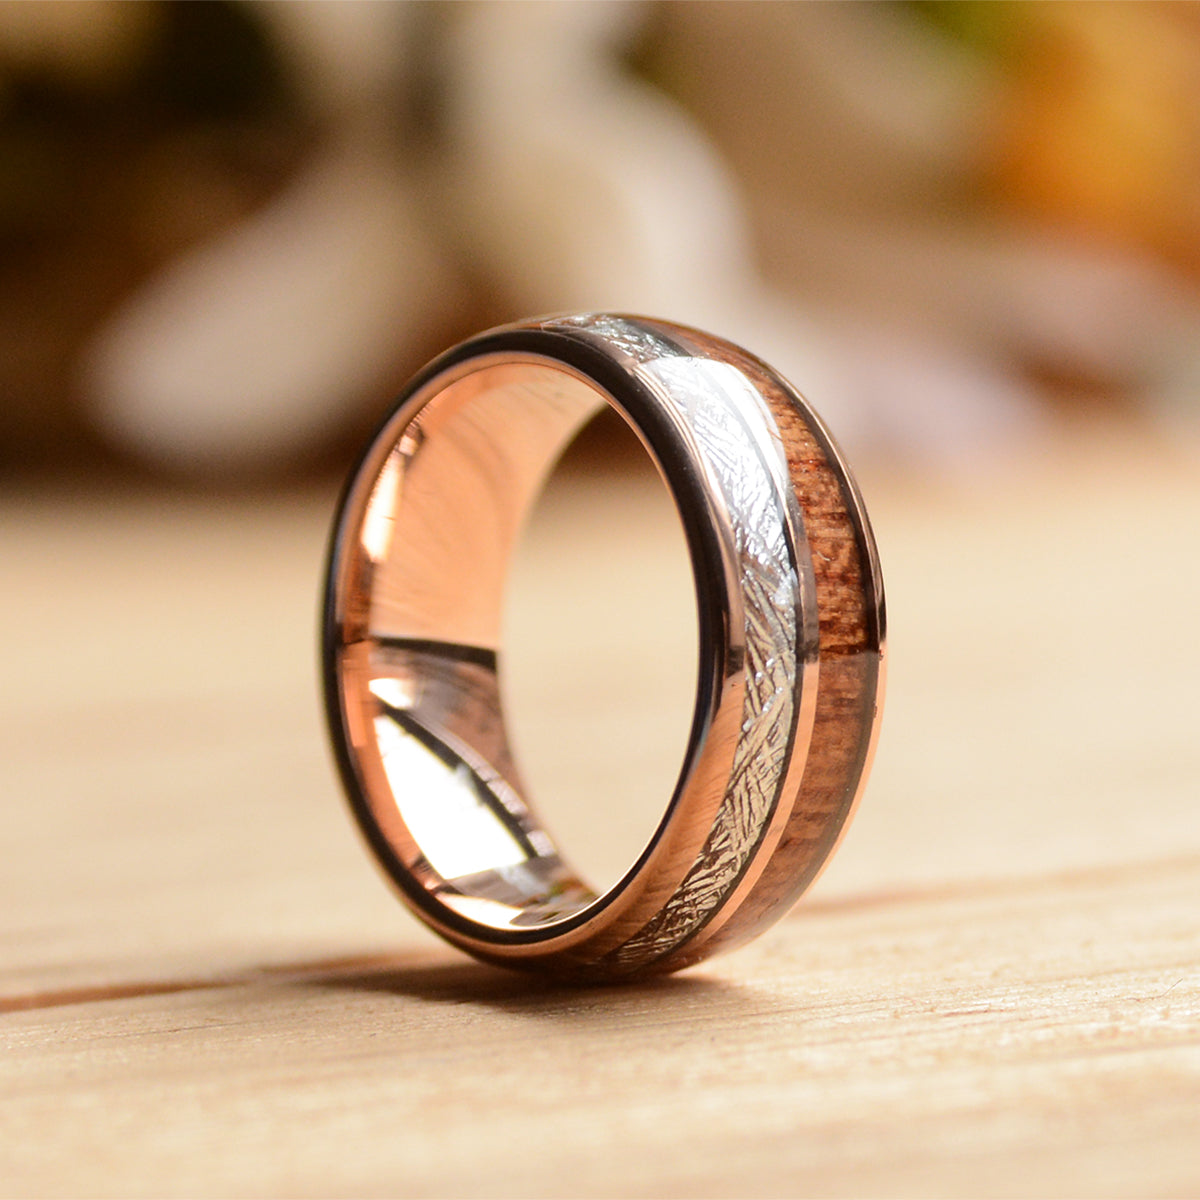 YGO tungsten wood ring Wood wedding band Mens wood,5 Year Anniversary Wooden Ring Wood Ring Wood inlay Ring yellow gold tungsten Ring